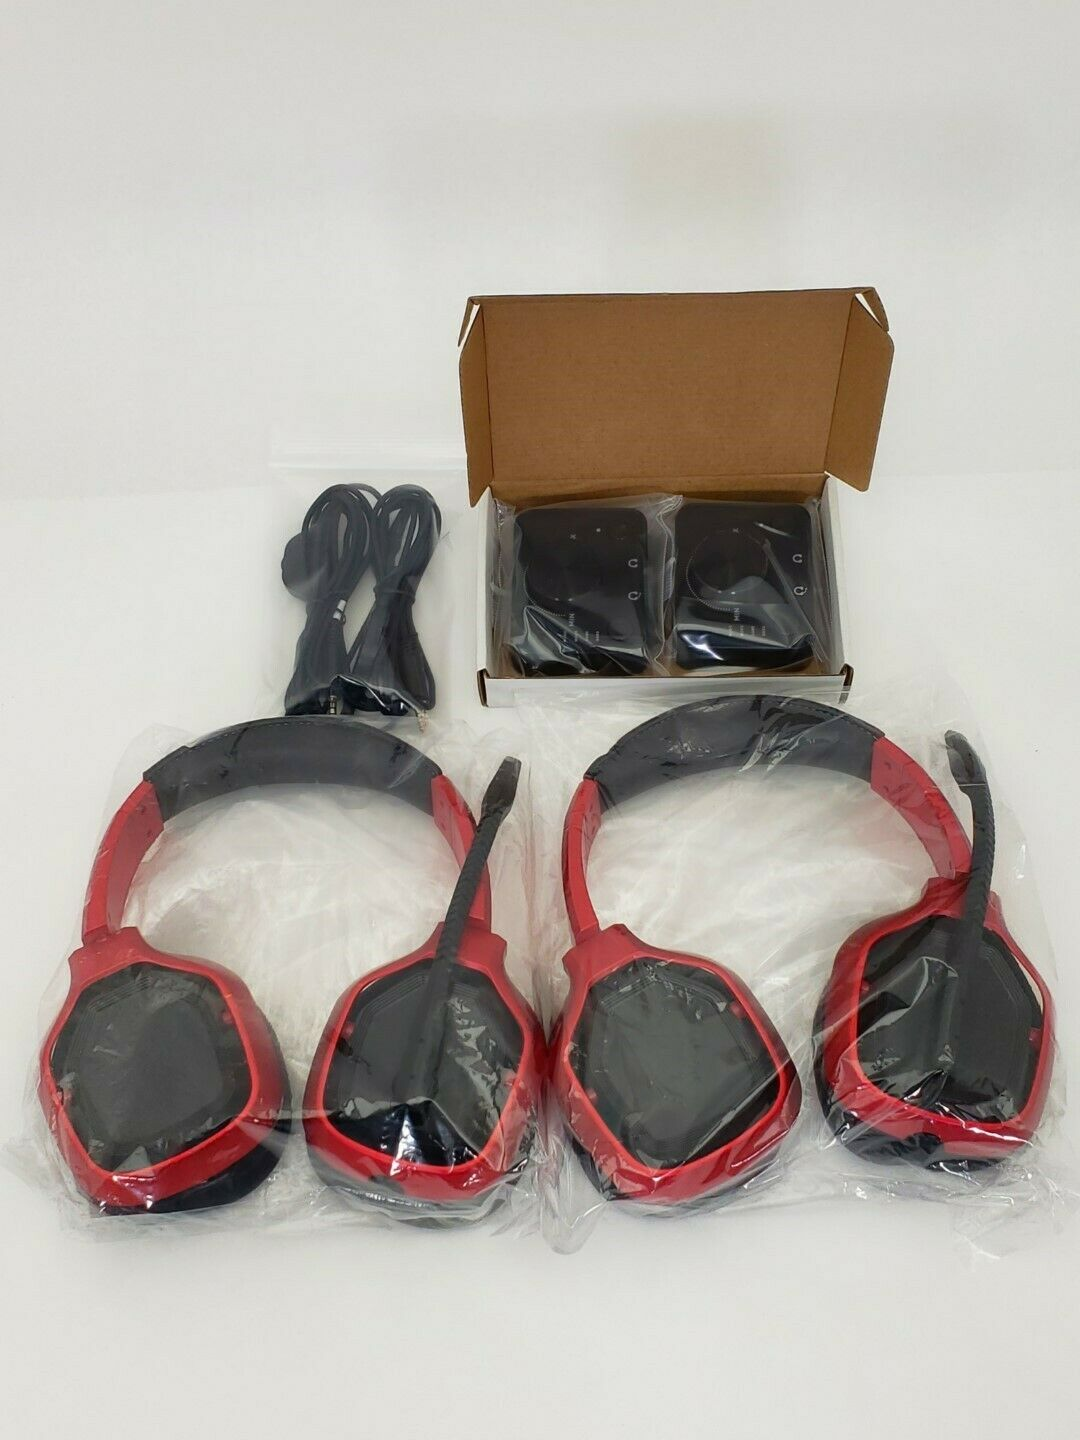 (Lot of 2) - Amazon Basics Pro Gaming Headset - W/ Aux Cable & Controller - Red